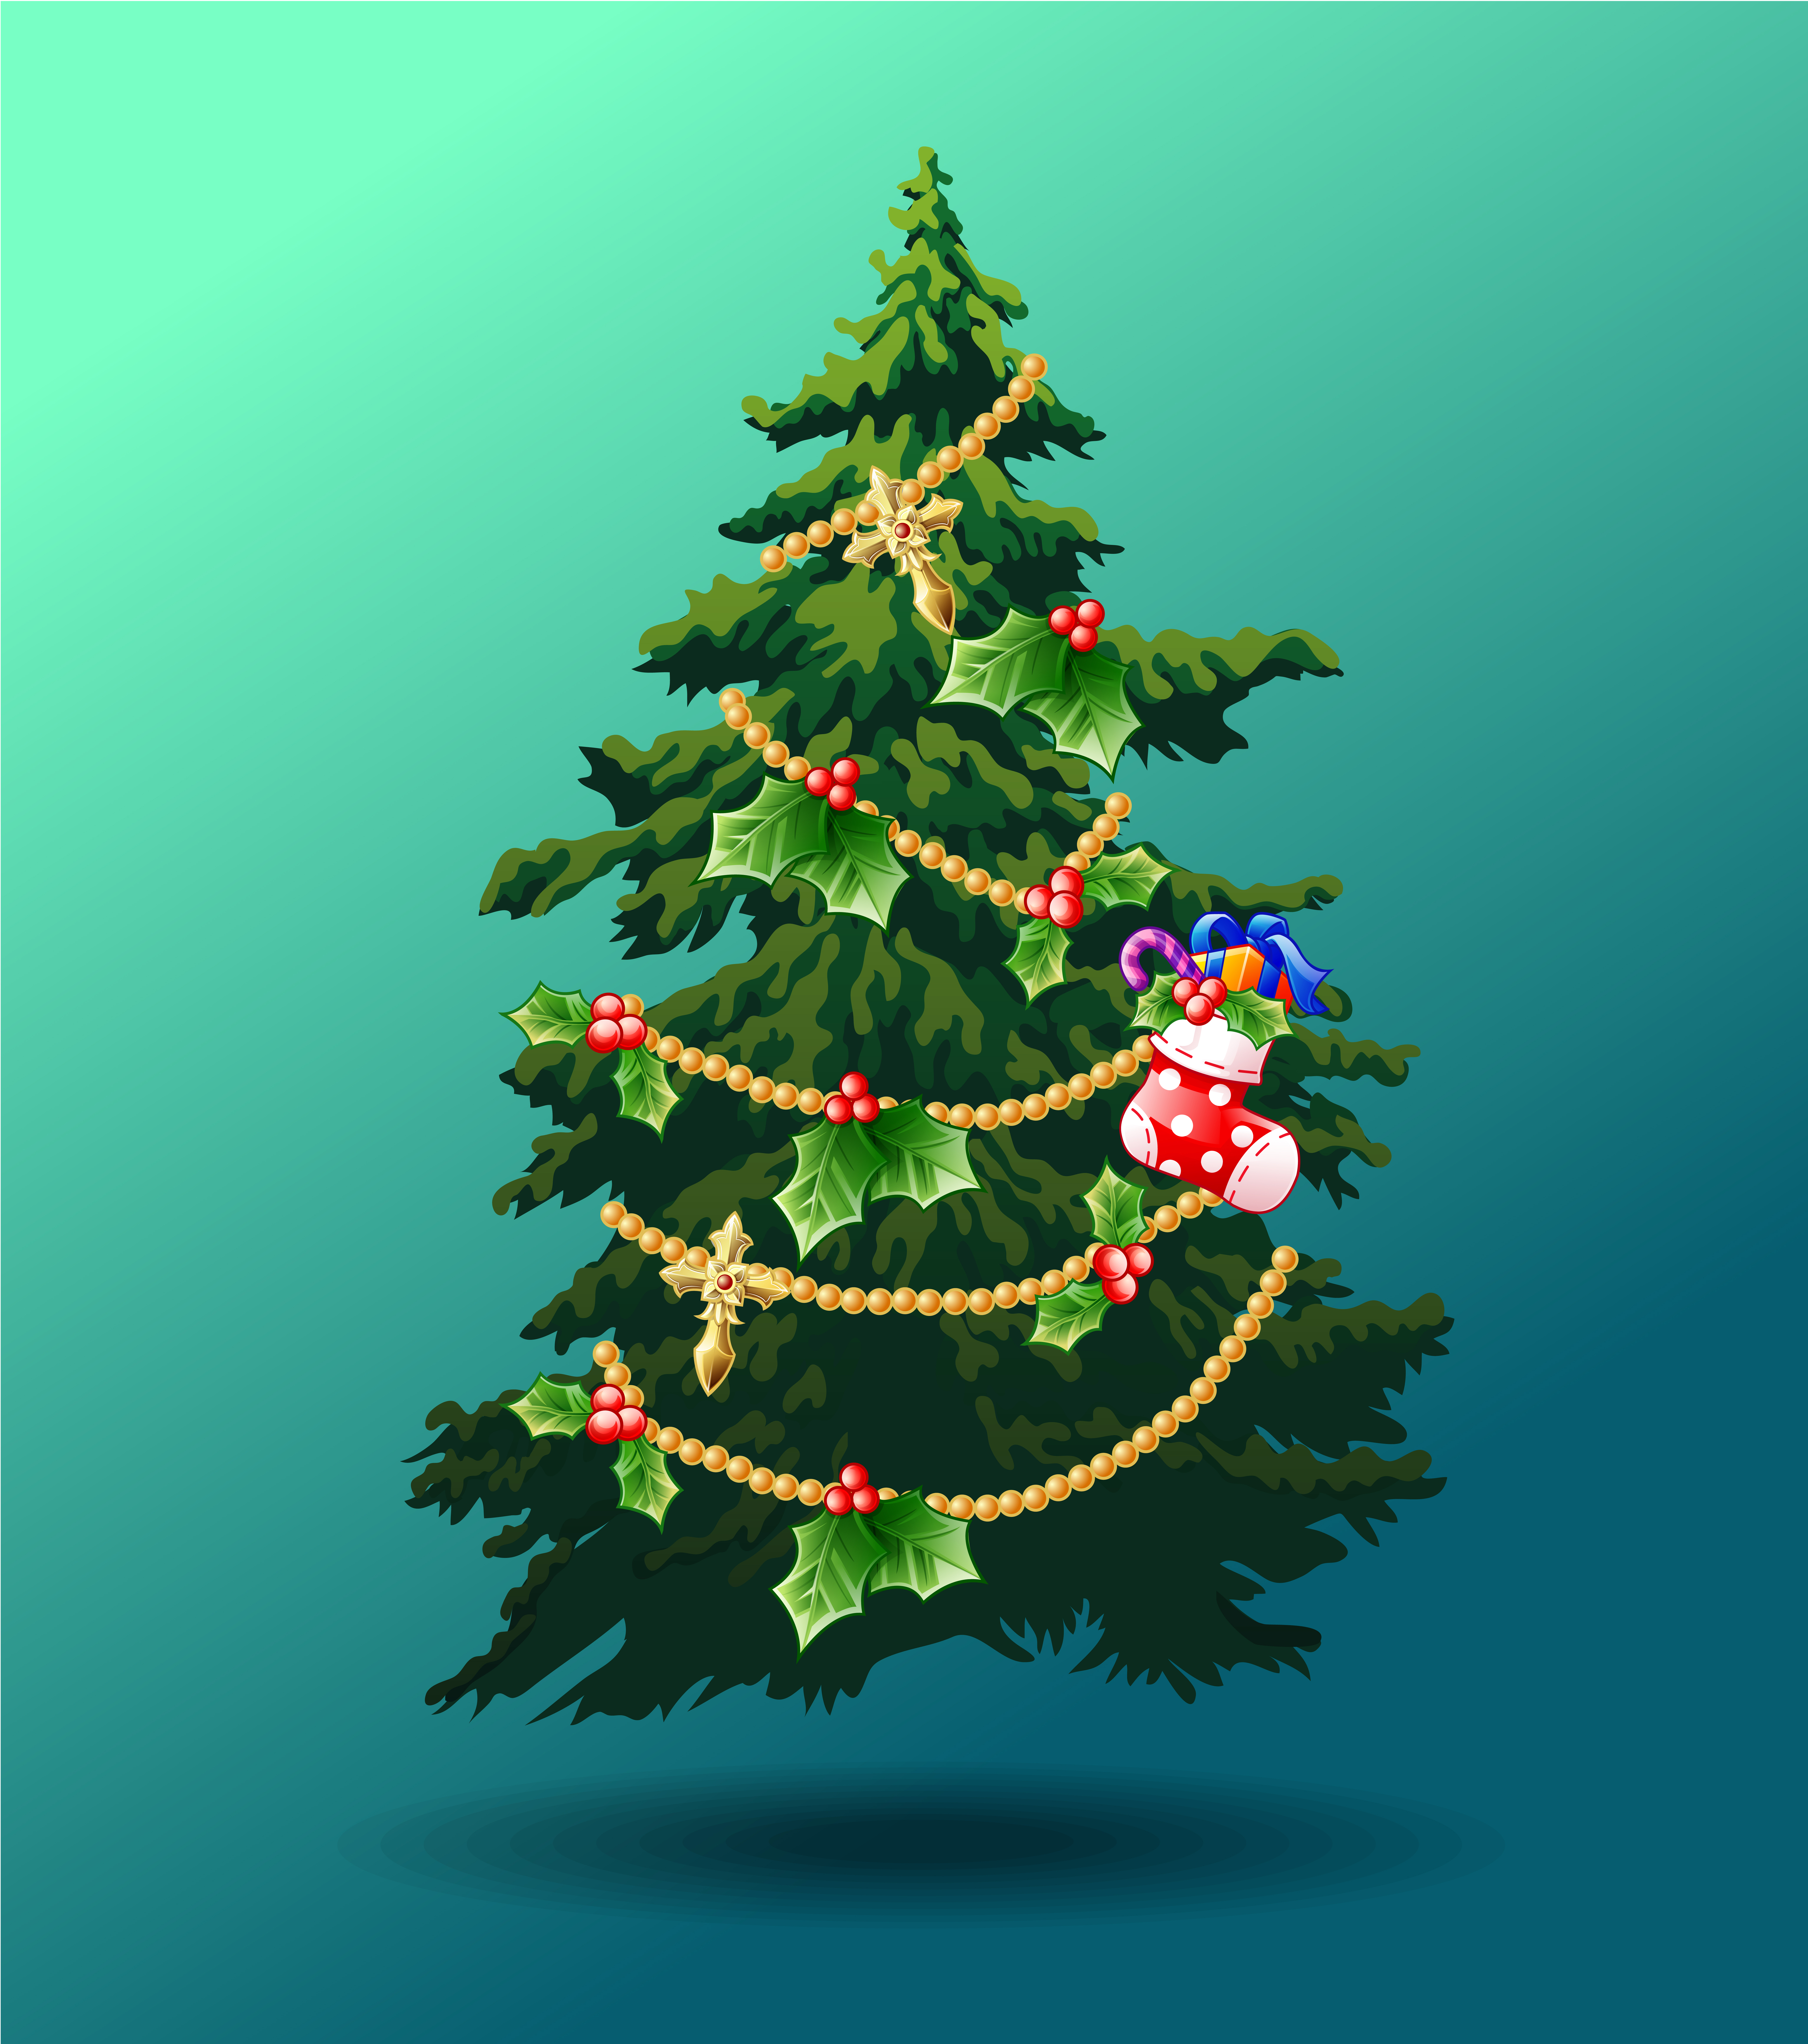 Decorated Christmas Tree On Blue Green Background Download Free Vectors Clipart Graphics Vector Art